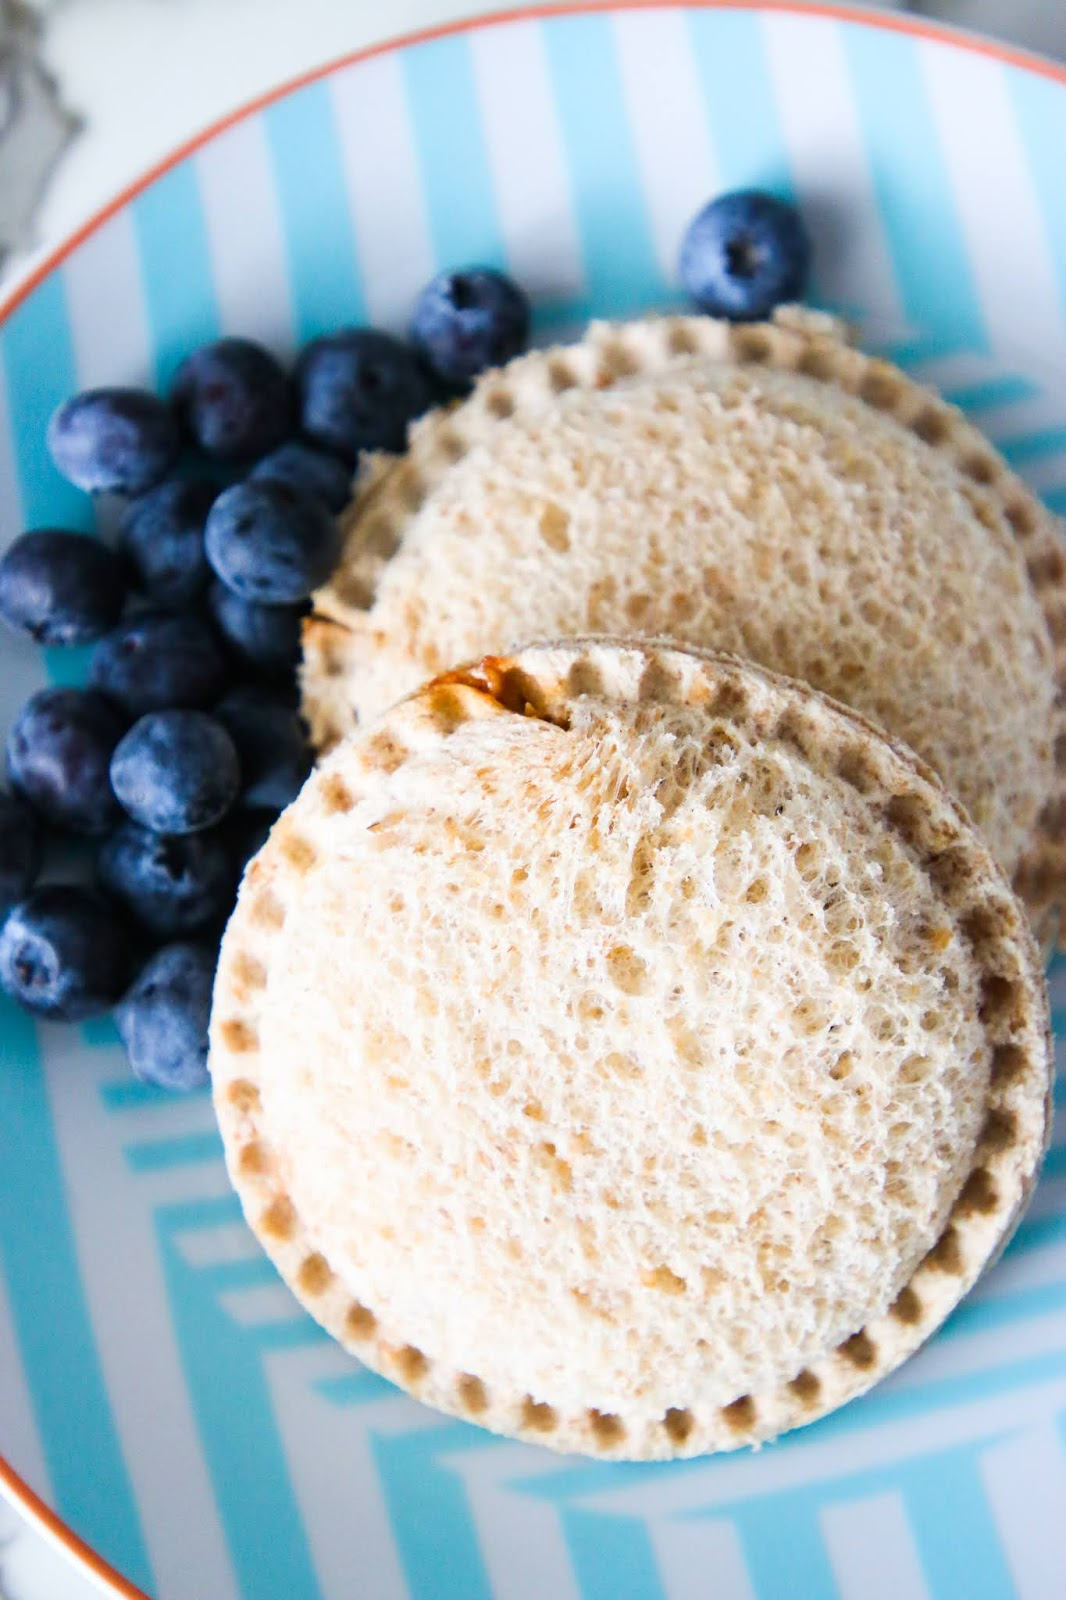 Diy uncrushable without sealer, homemade uncrustables for freezer, copycat uncrustables, uncrushable maker Walmart, ham and cheese uncrustables, how to make uncrustables thaw faster, sandwich sealer target, uncrustables hack.